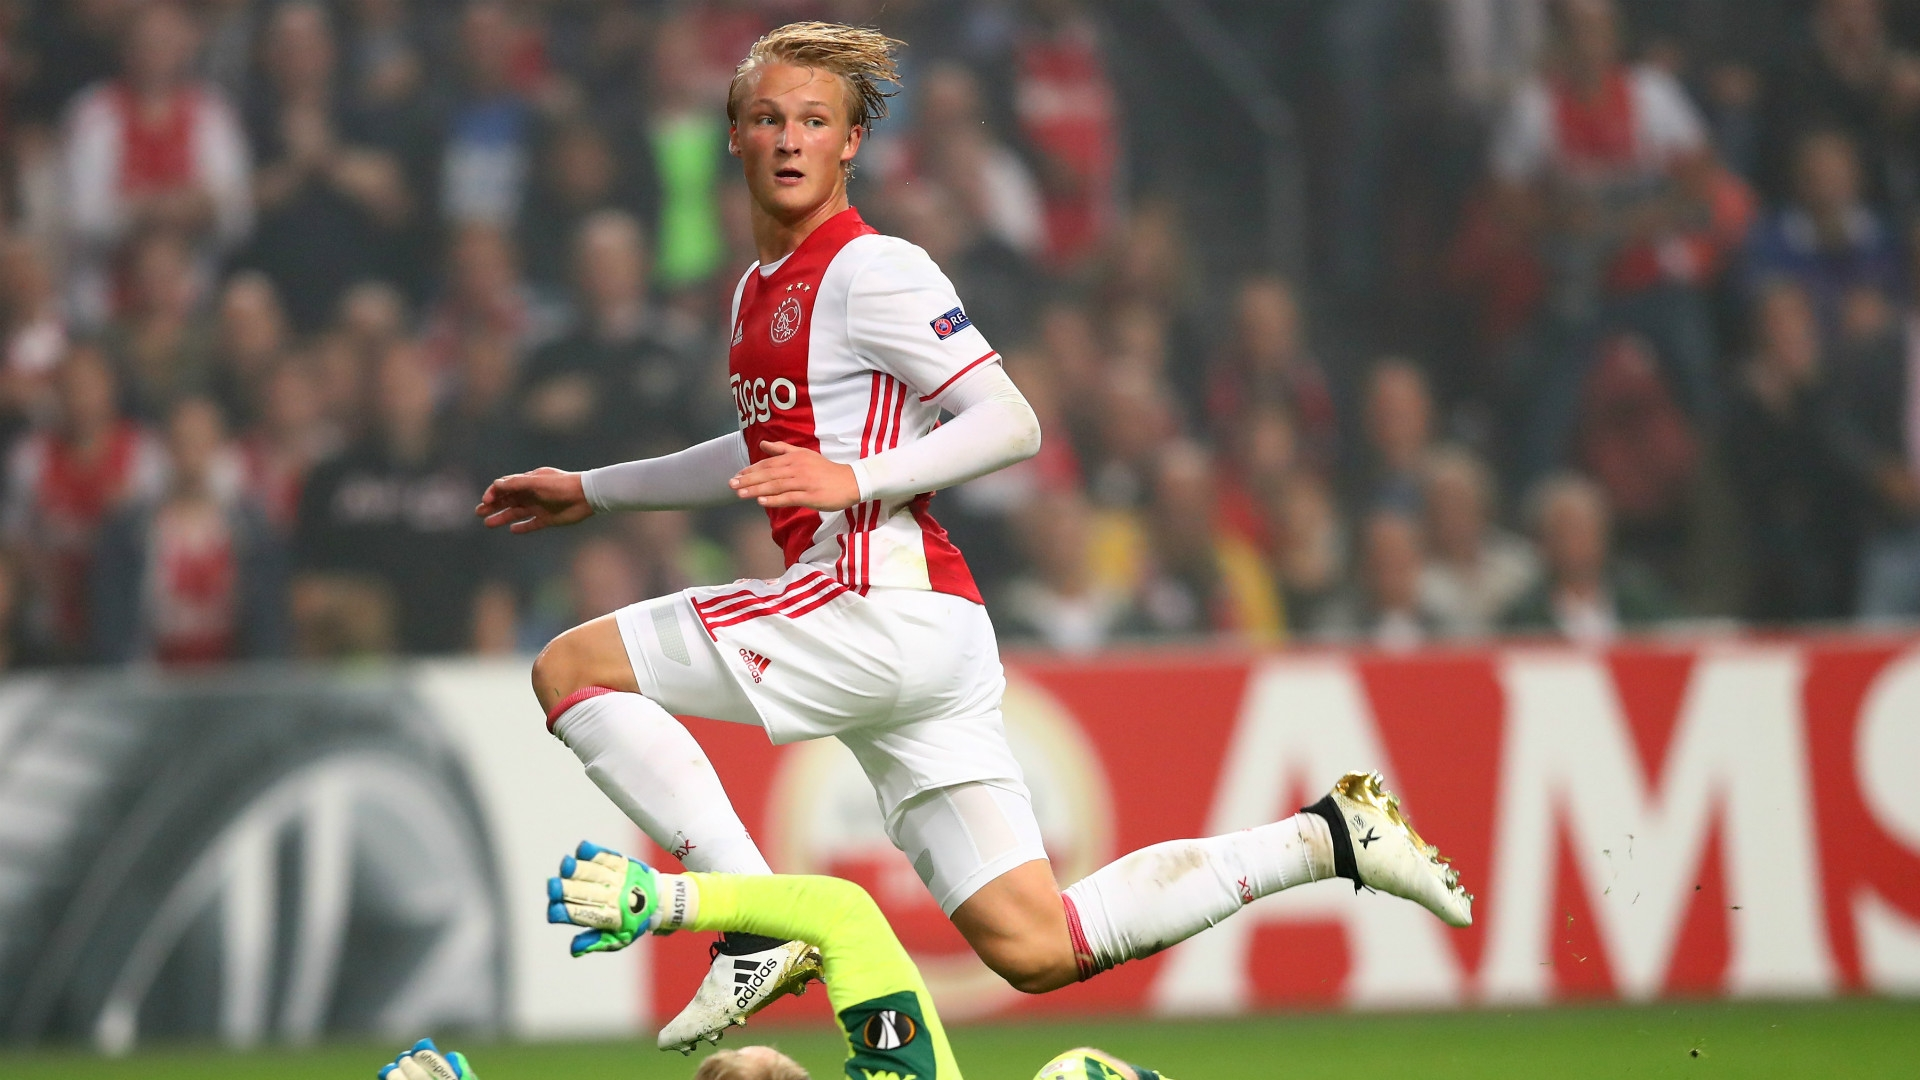 Dolberg is said to want to remain at Ajax for next season